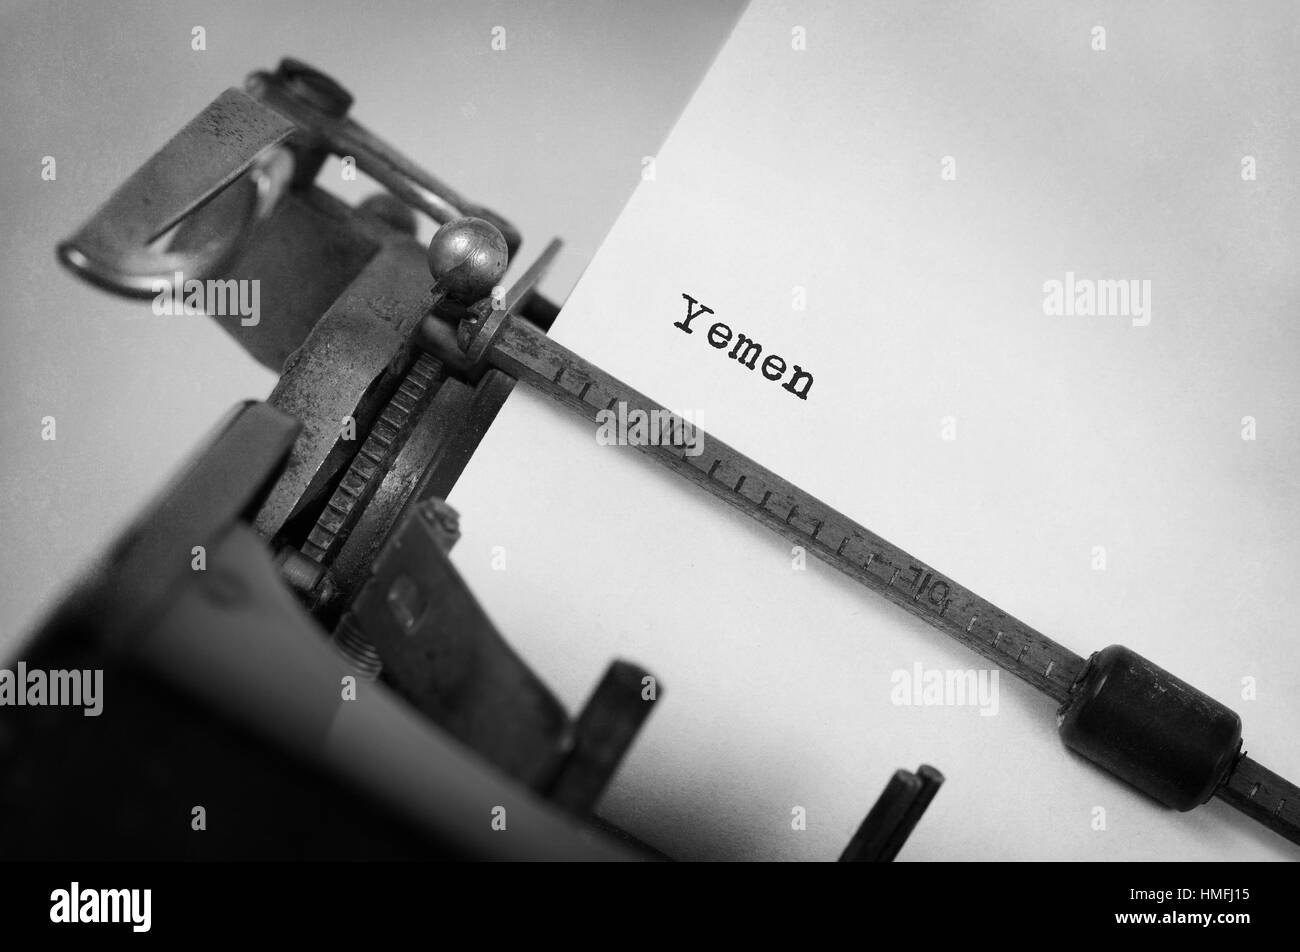 Inscription made by vintage typewriter, country, Yemen - Stock Image